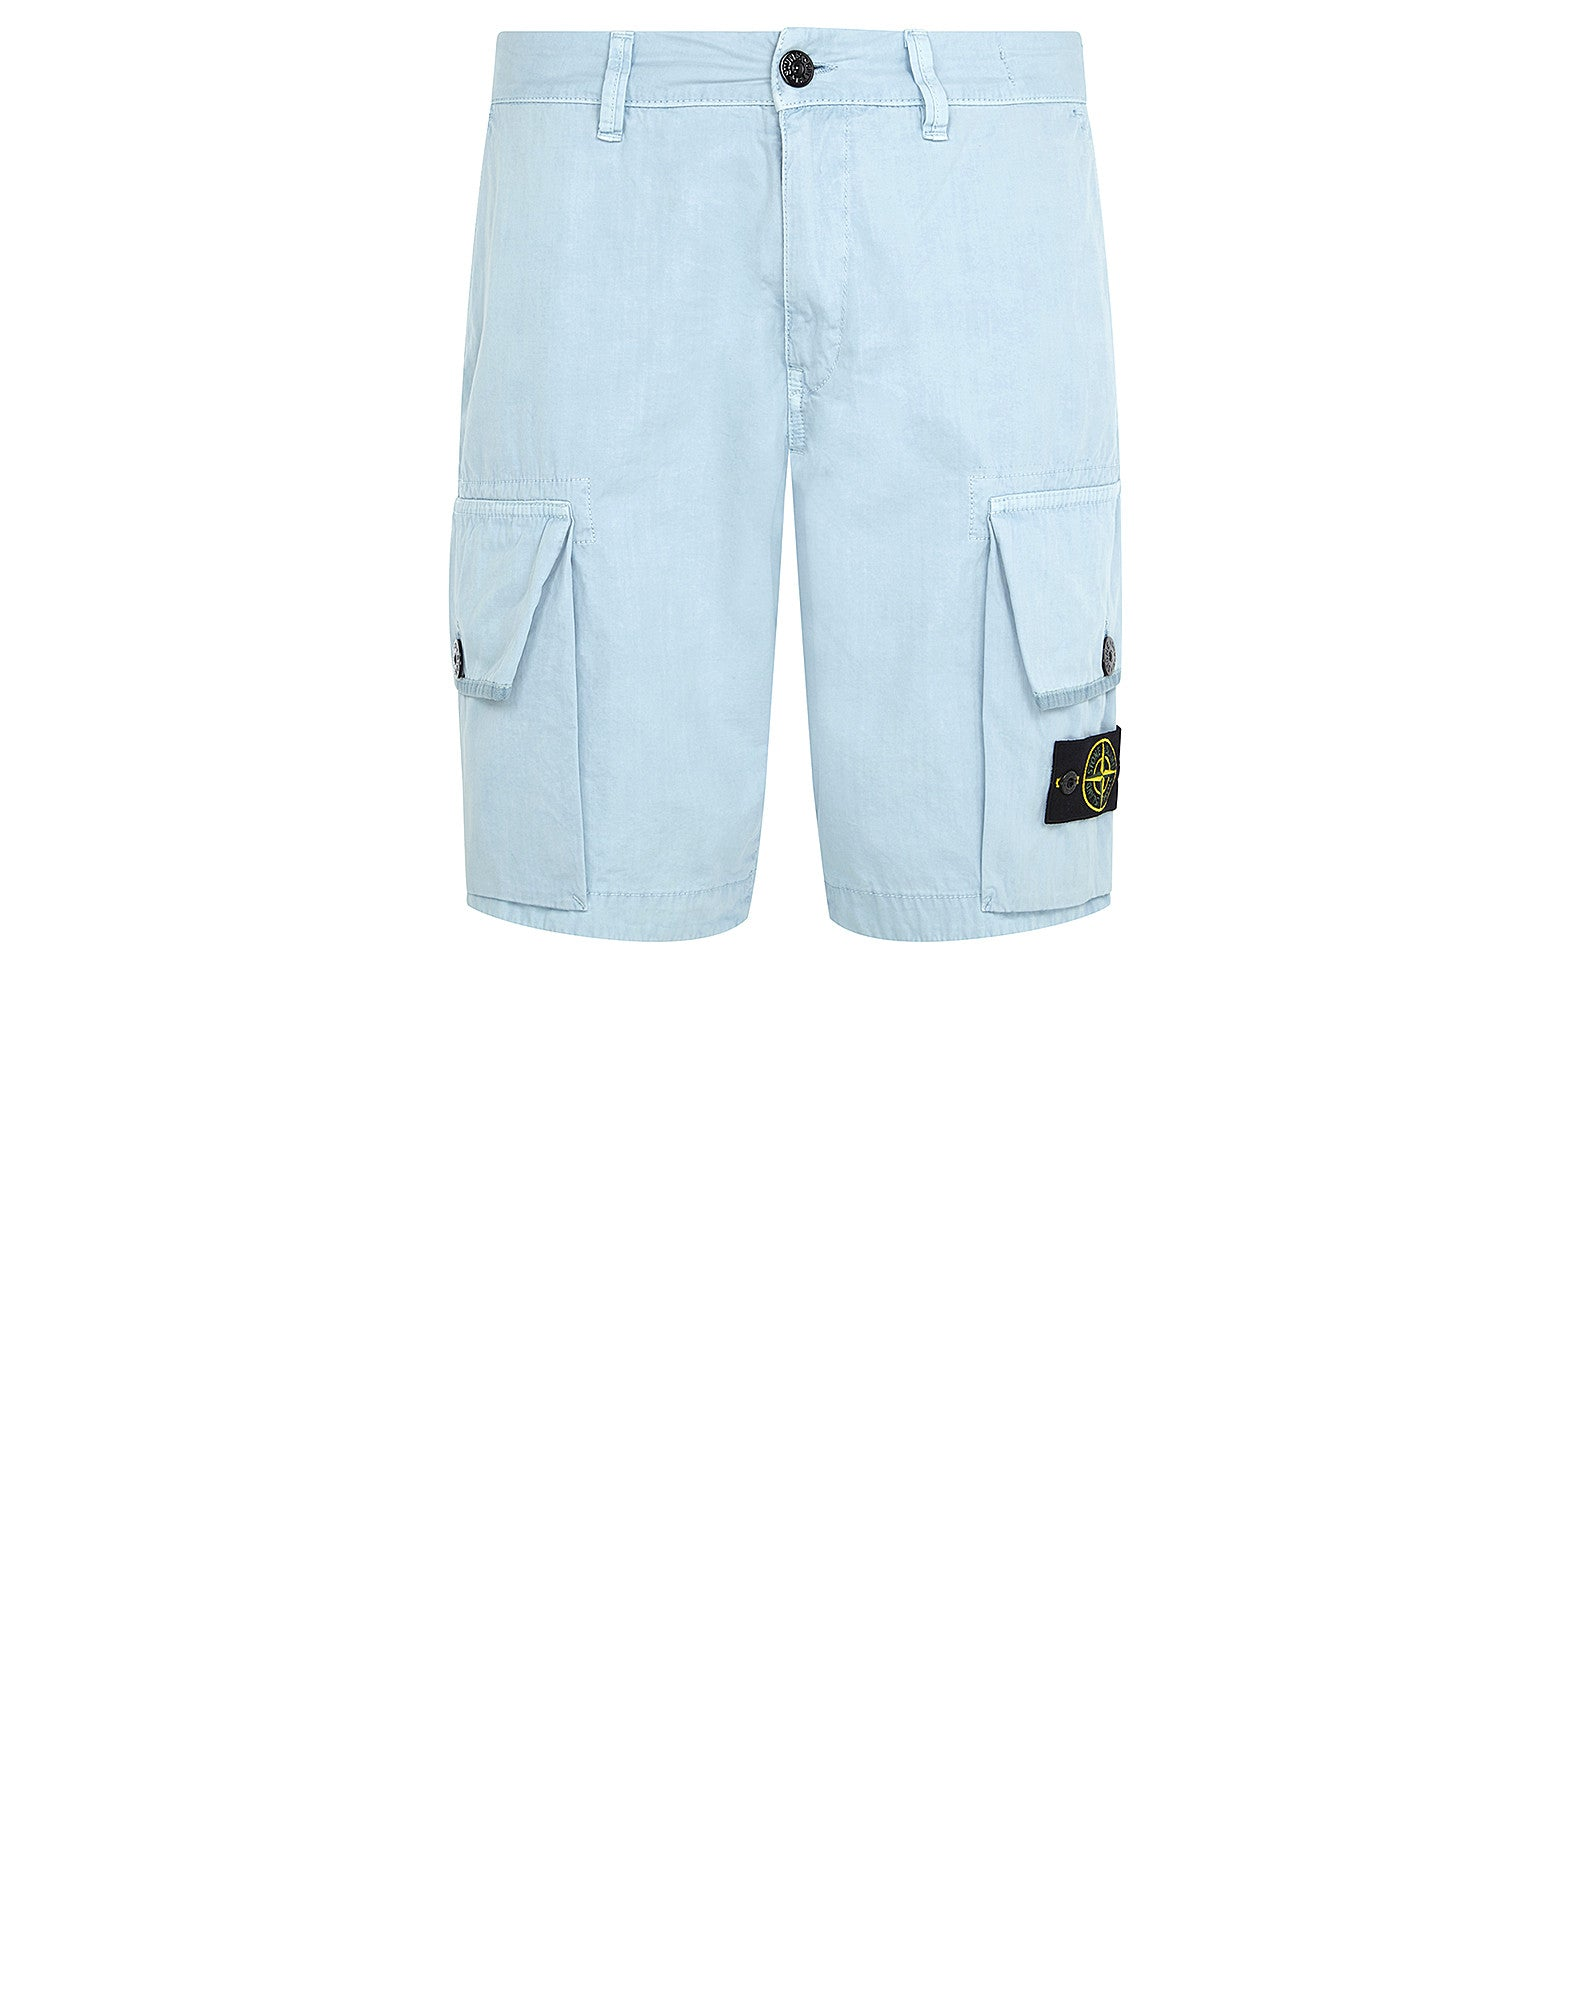 L02WN T.CO+OLD Shorts in Light Blue